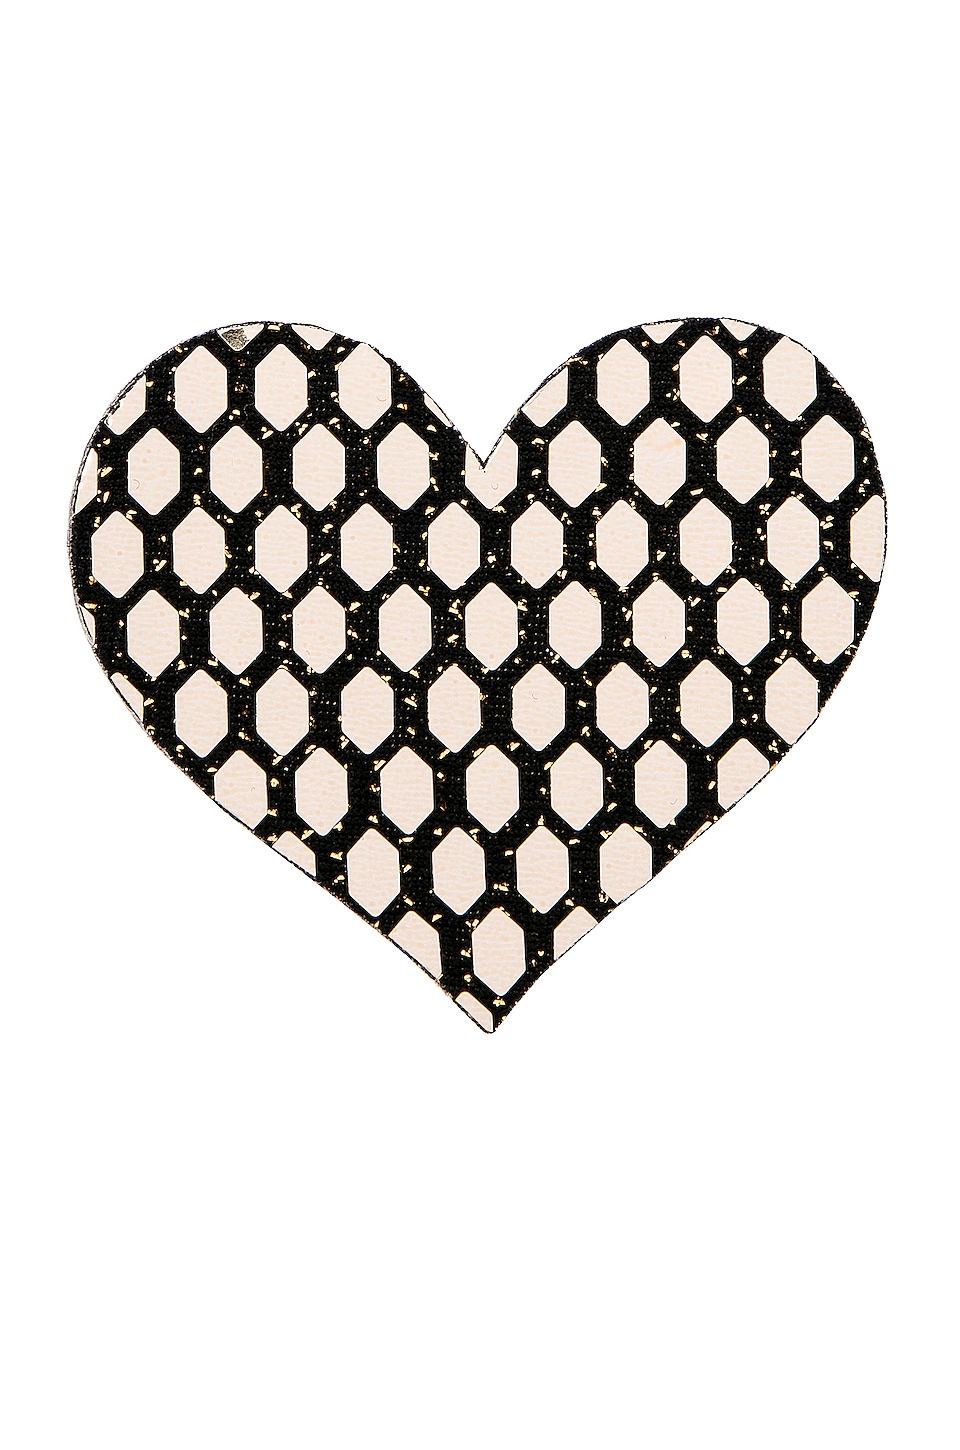 Bristols6 Flash Dance Heart Reusable Nippies in Gold